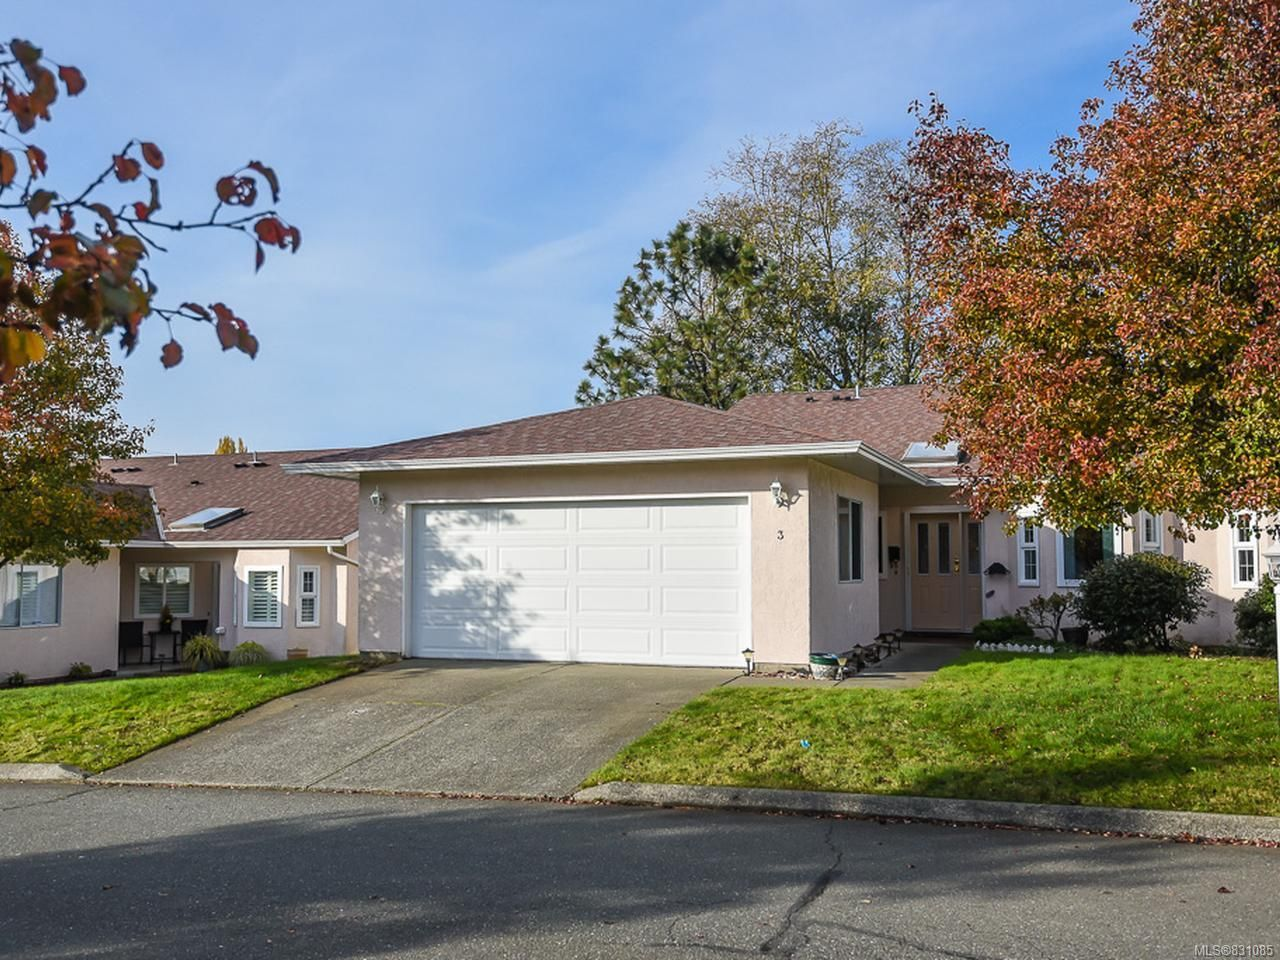 Main Photo: 3 2030 Robb Ave in COMOX: CV Comox (Town of) Row/Townhouse for sale (Comox Valley)  : MLS®# 831085